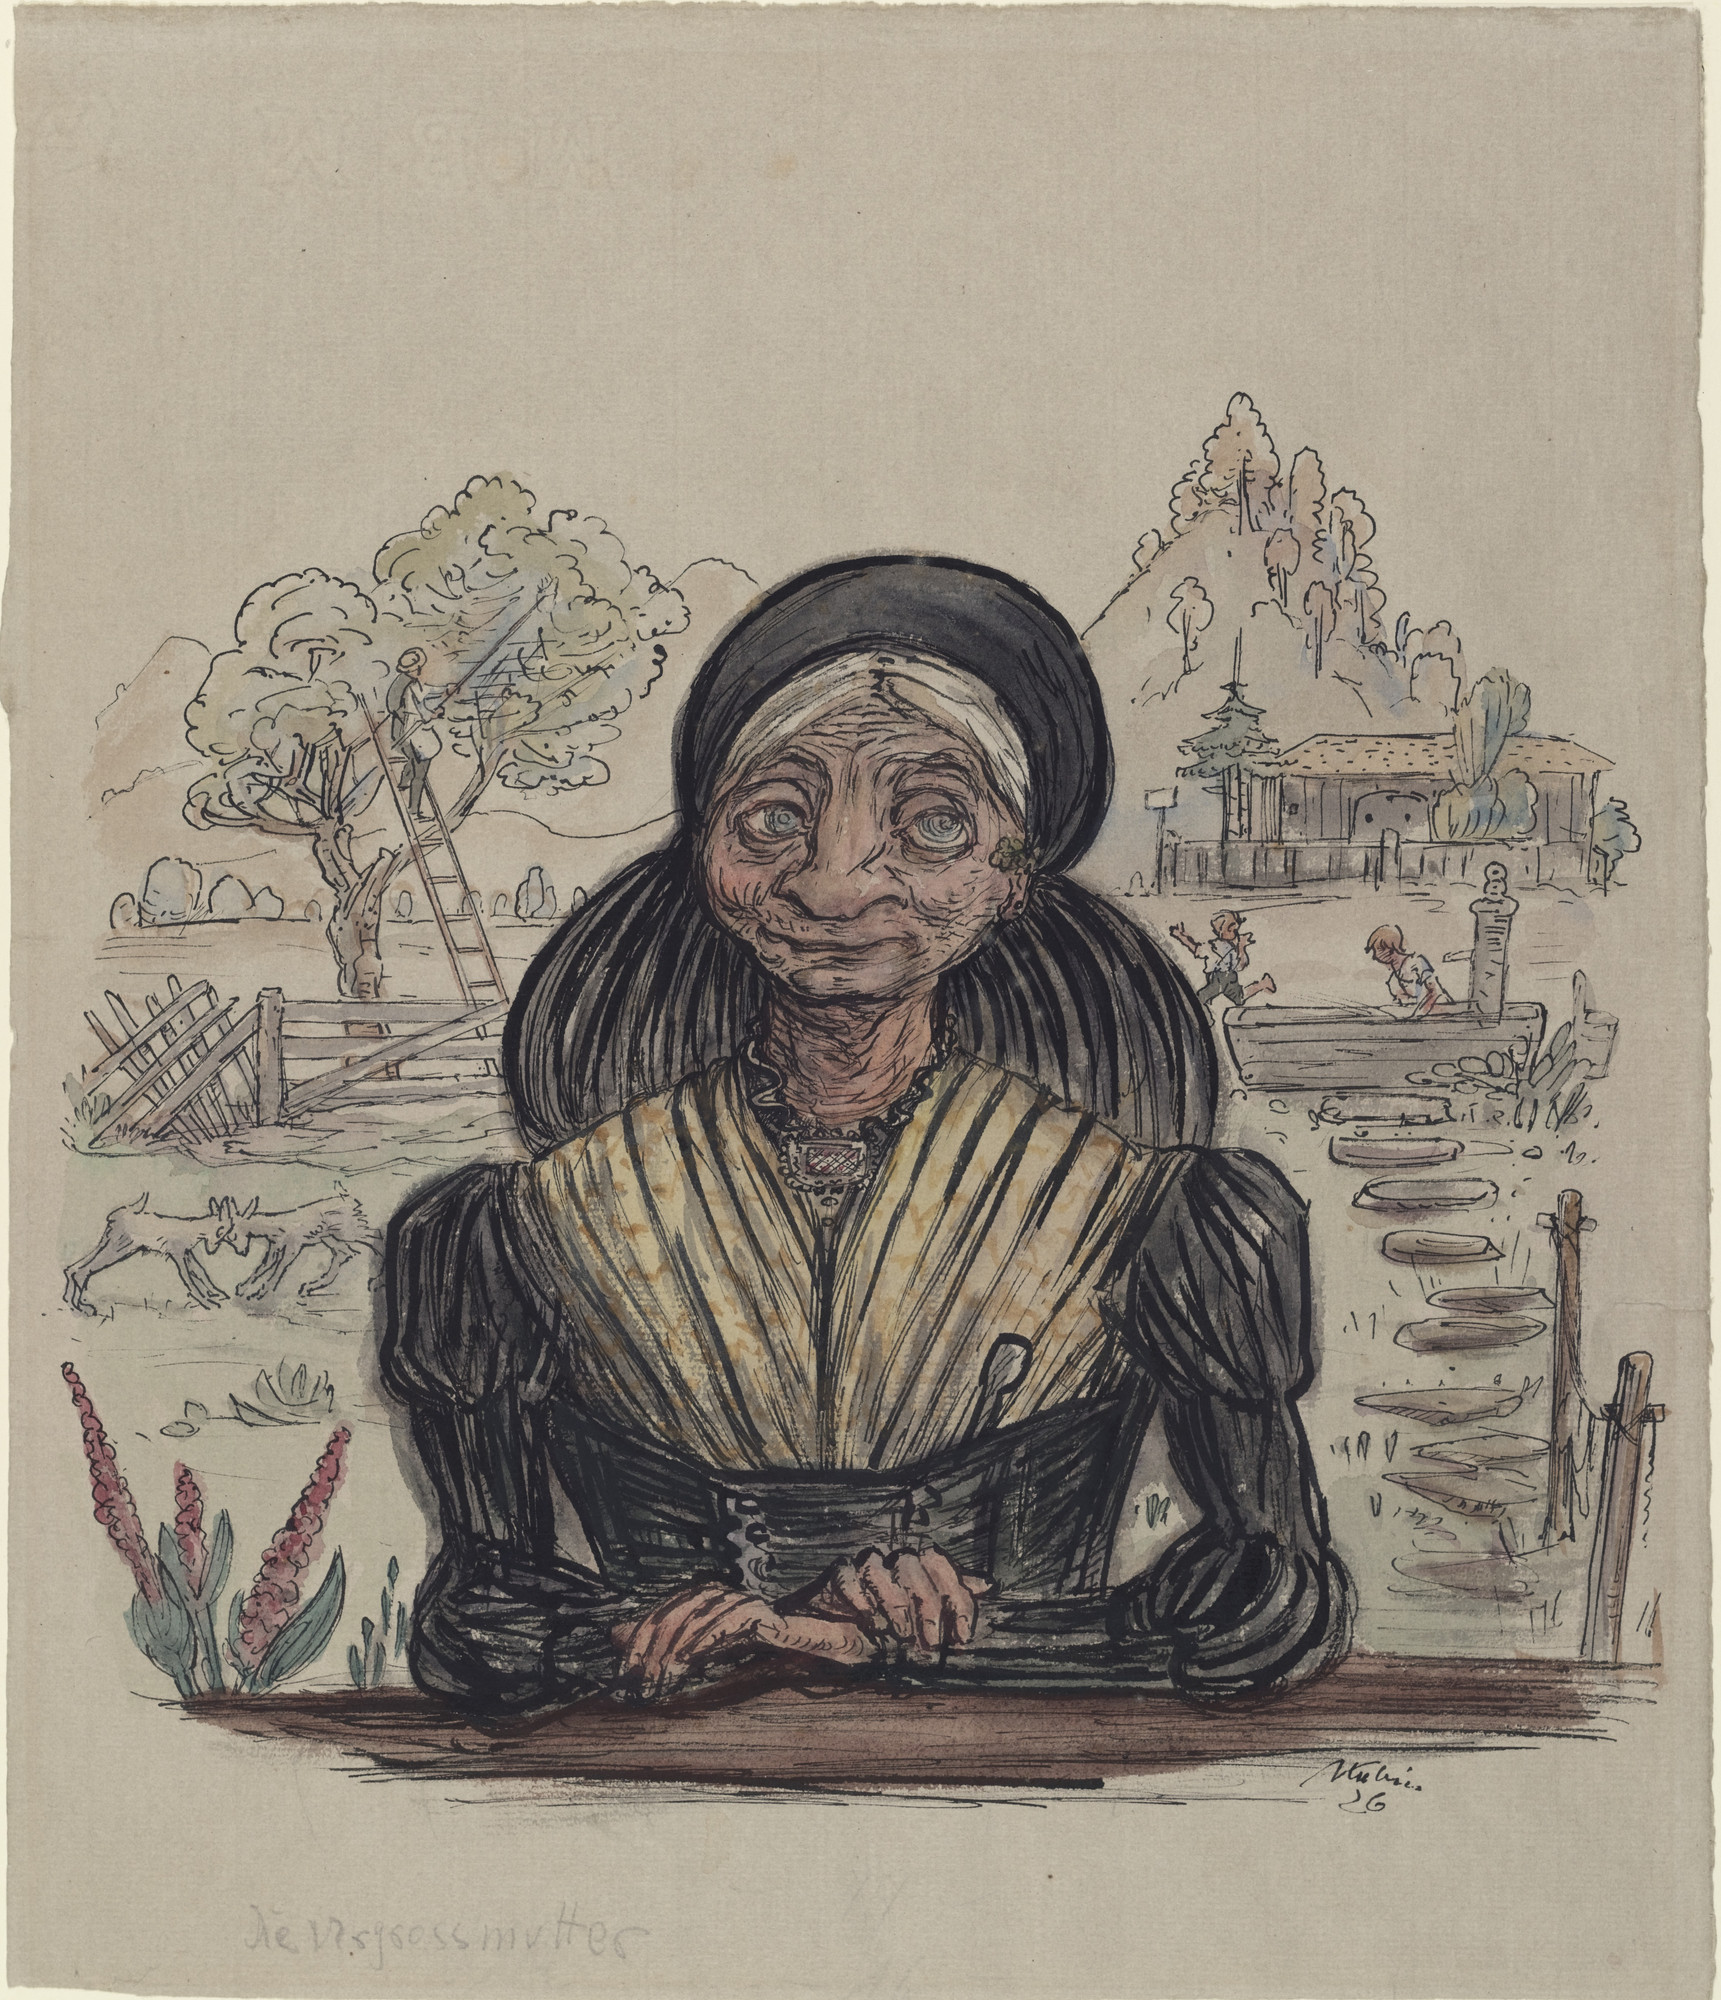 Alfred Kubin. The Great Grandmother (Die Urgrossmutter). 1926